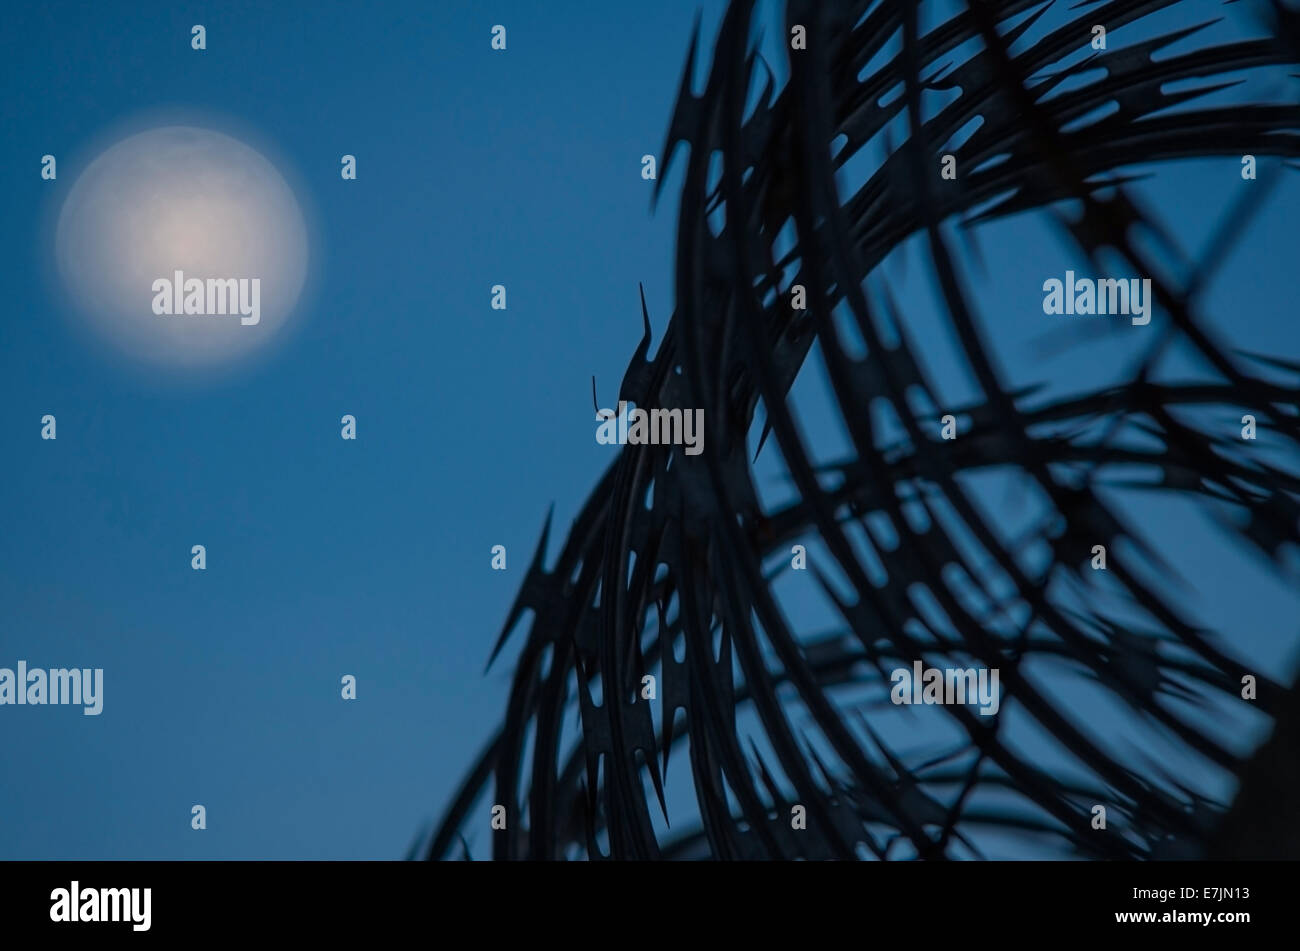 Concertina wire boundary, night sky with moon as background, selective focus - Stock Image